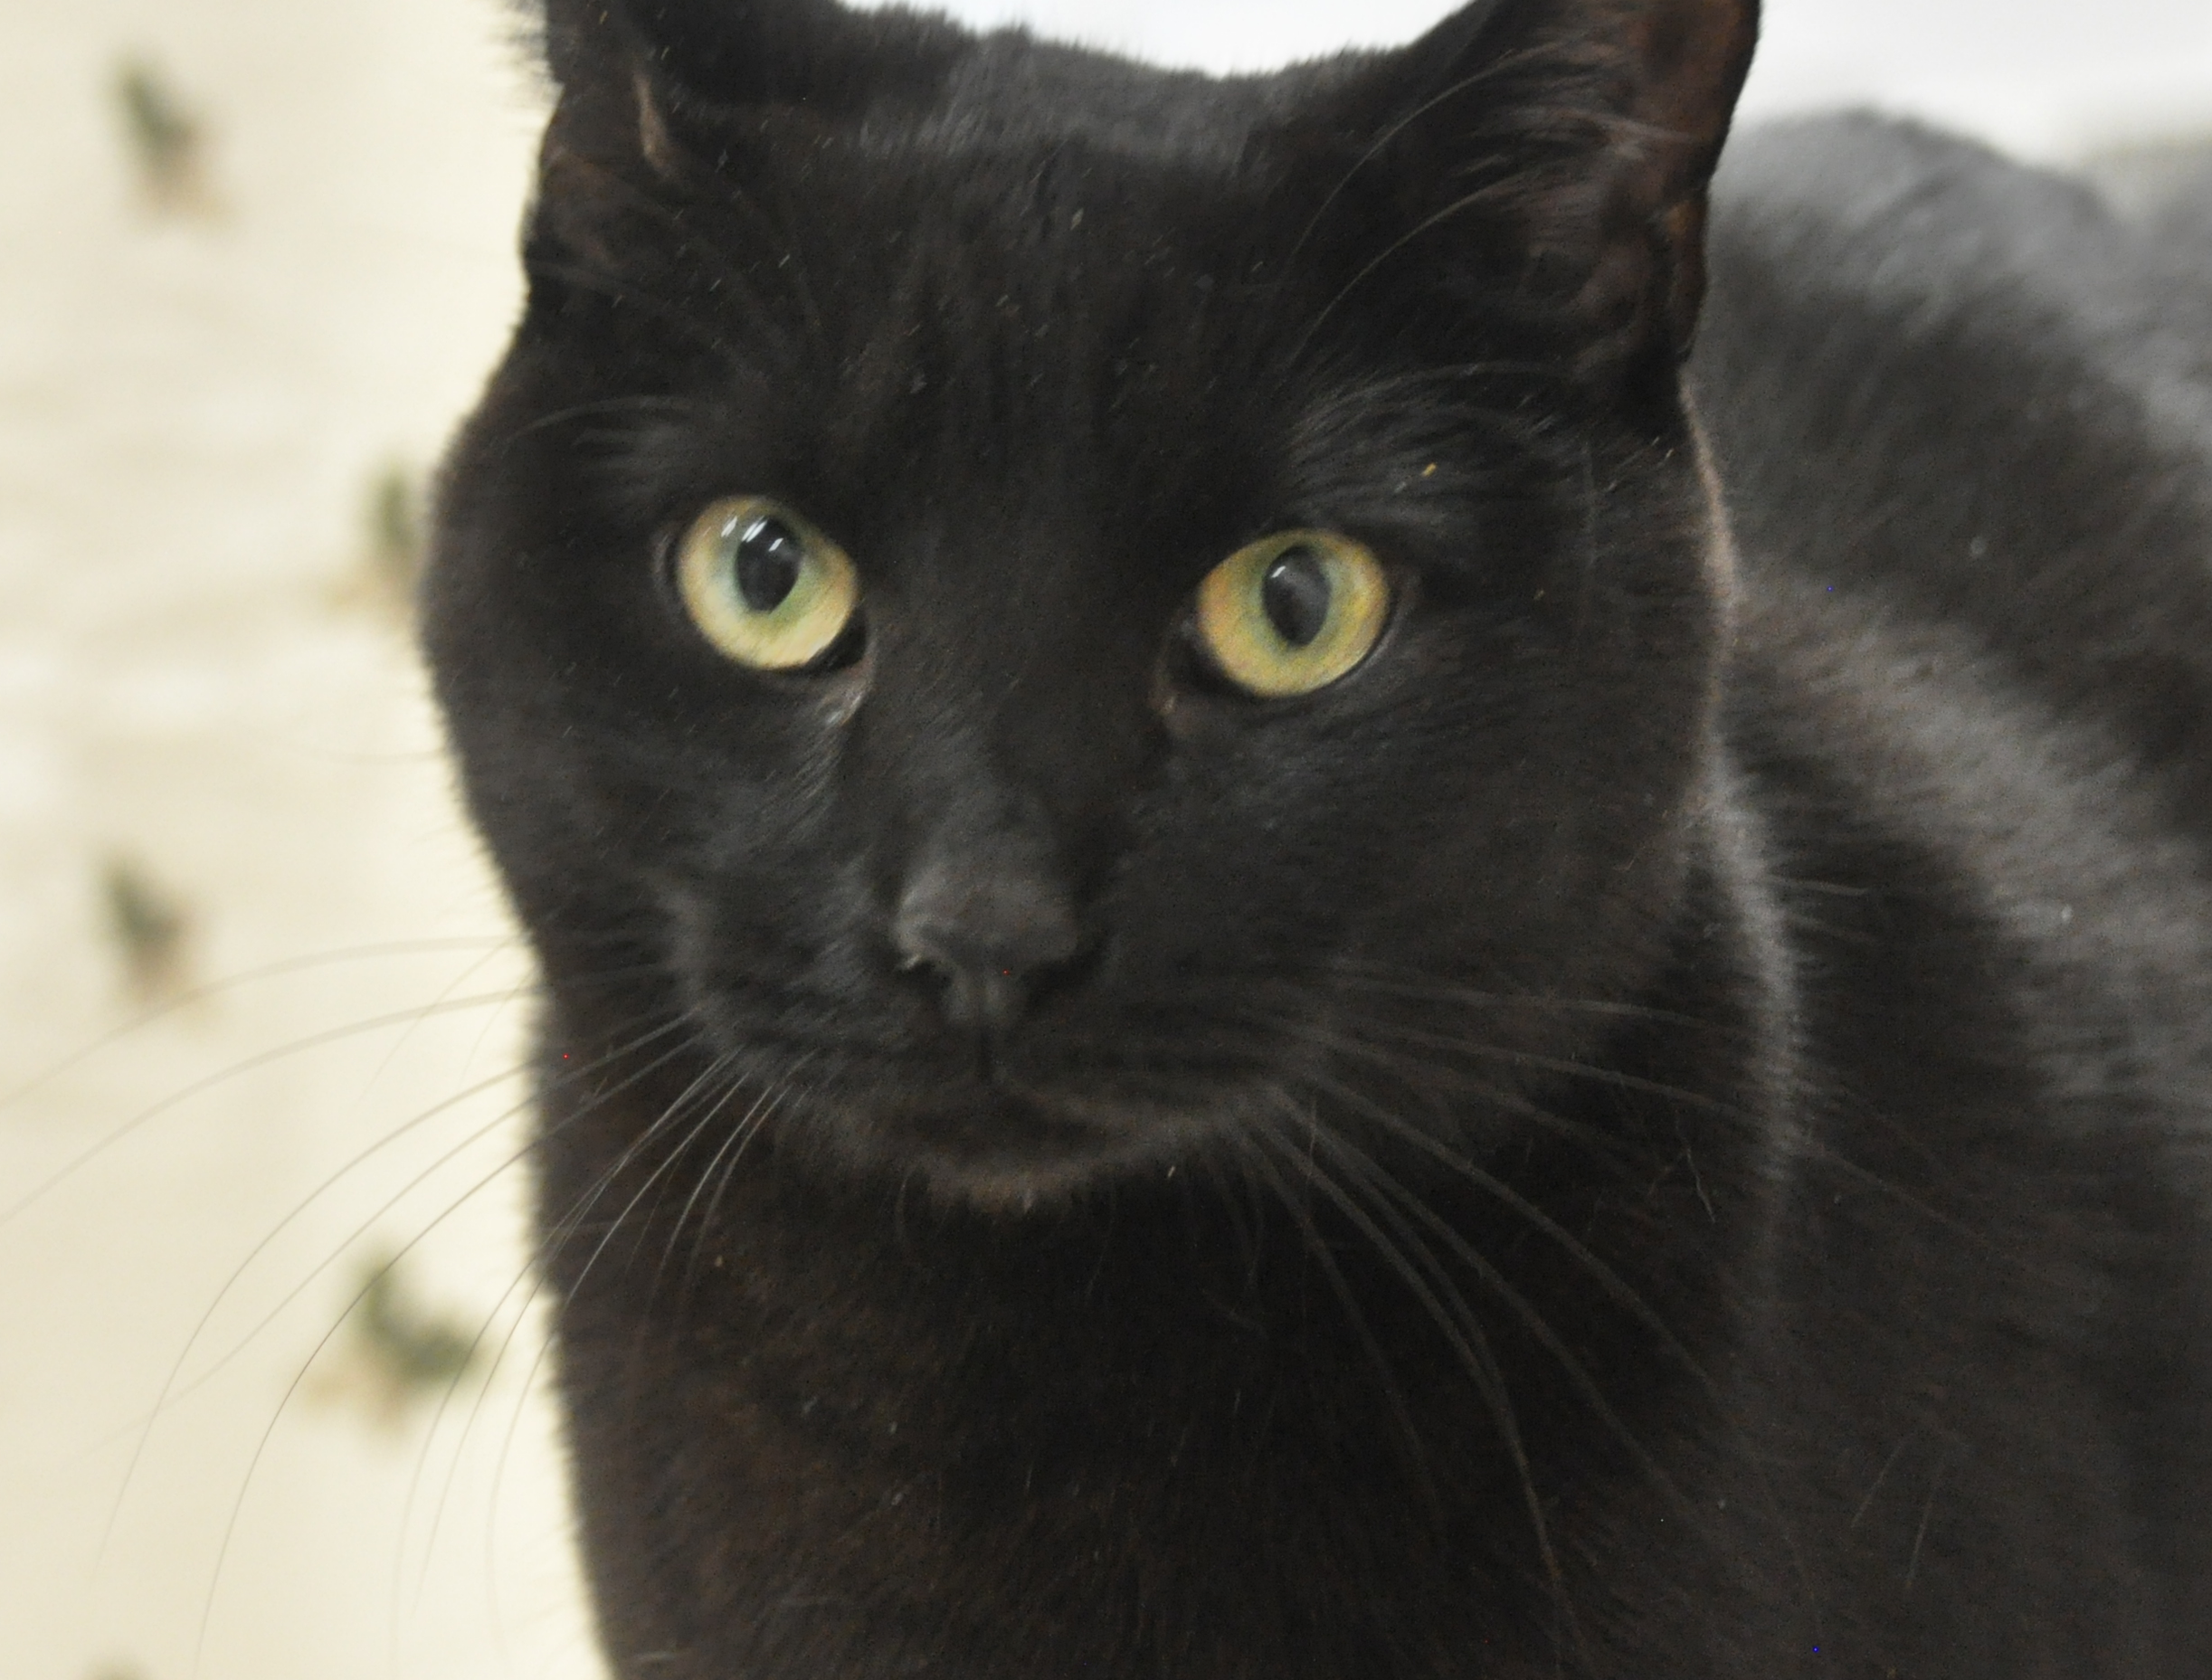 This cat will be available for adoption at the Brandywine Valley SPCA's Mega Adoption Event at the Delaware State Fairgrounds in Harrington on Dec. 8 and 9, 2018.